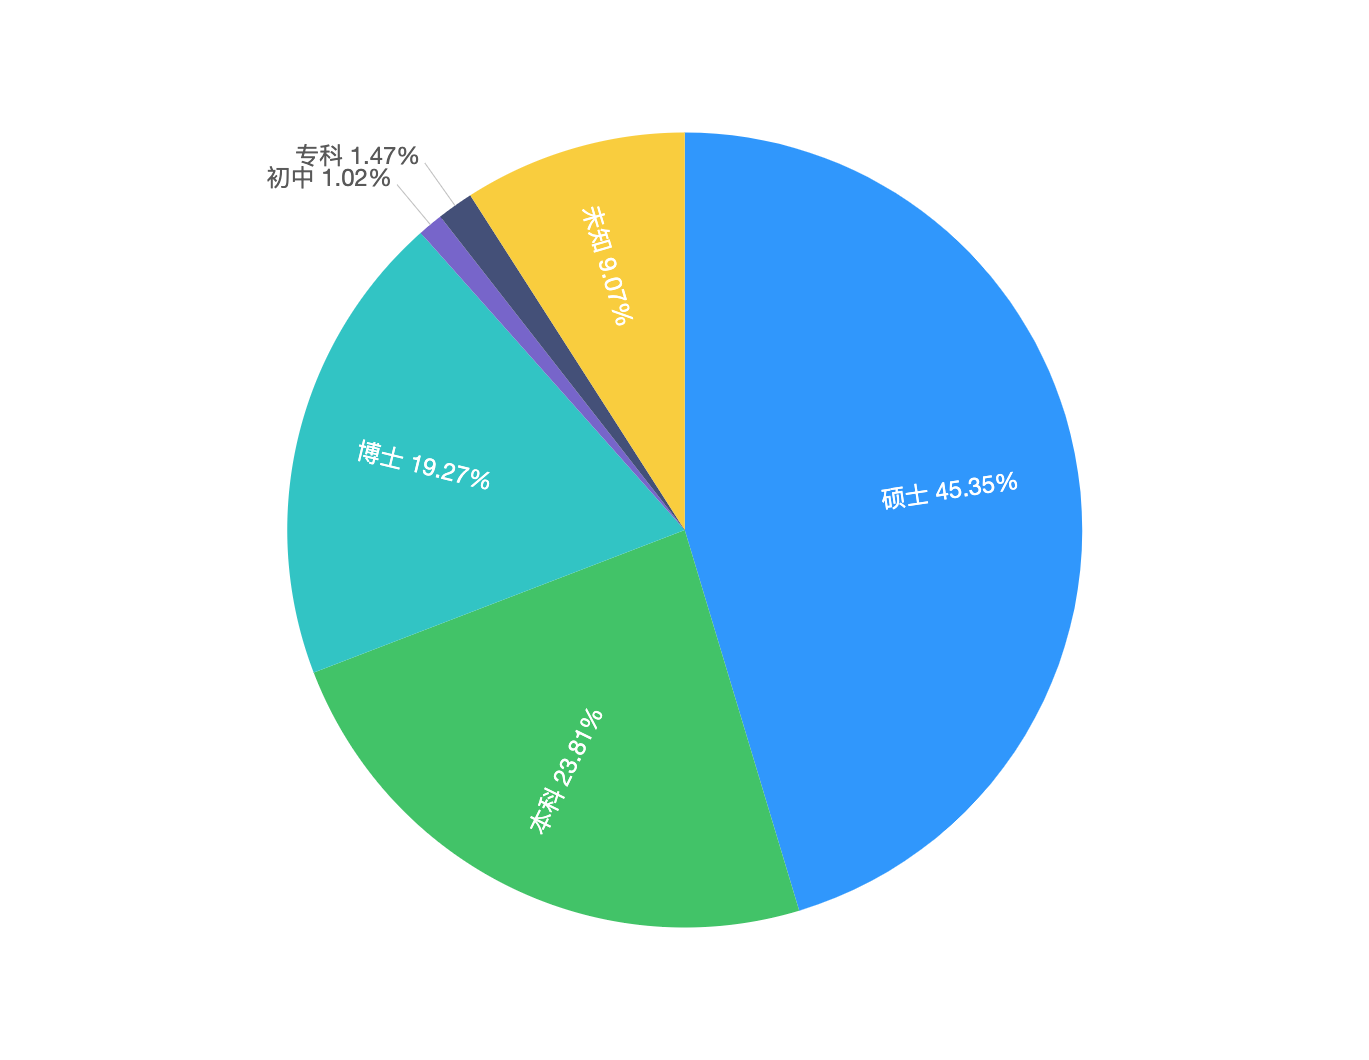 pie chart with label